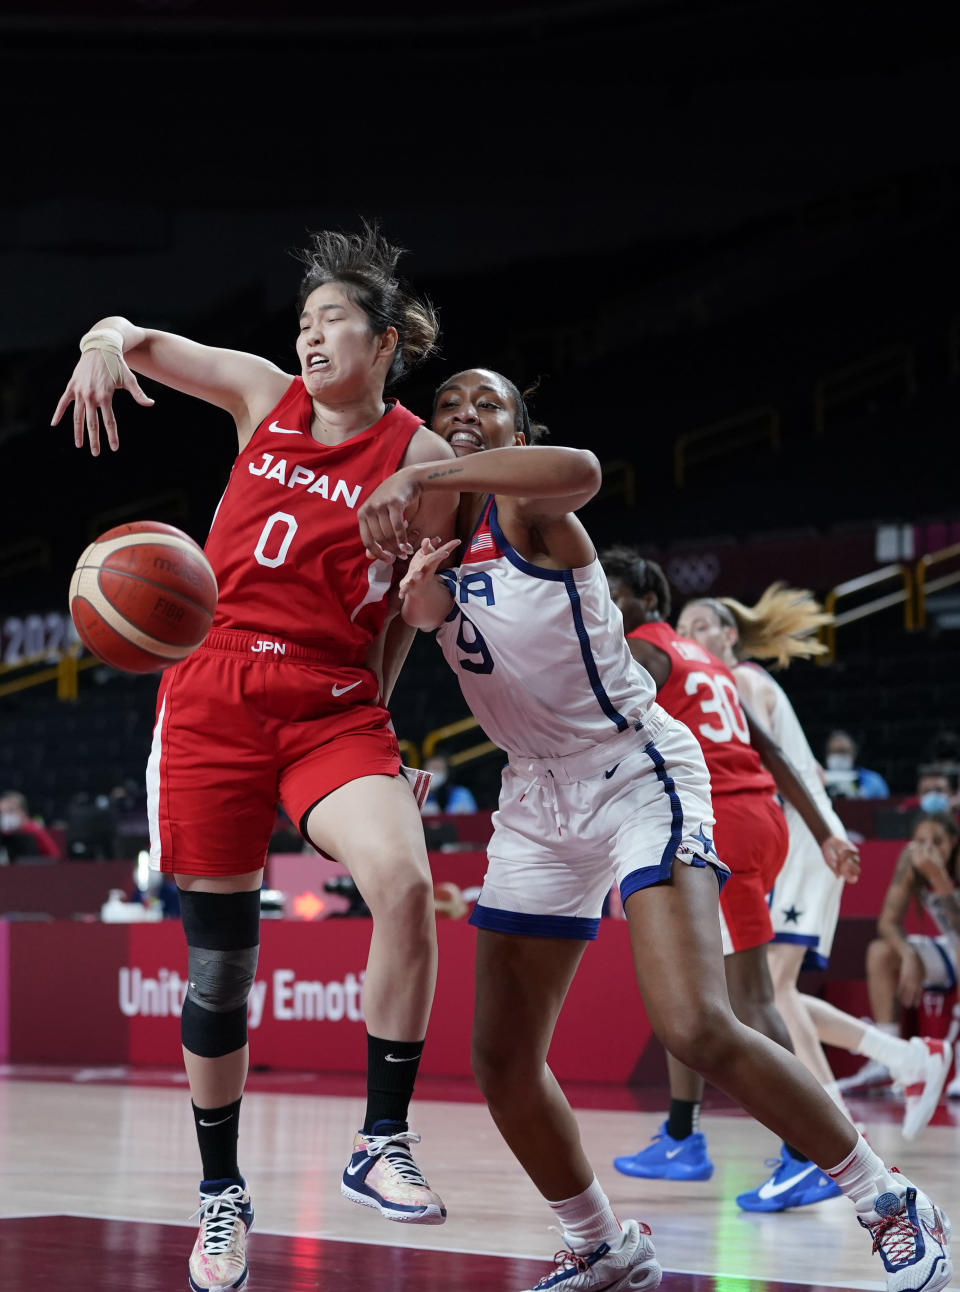 Japan's Moeko Nagaoka (0), left, and United States' A'Ja Wilson (9) fight for a rebound during women's basketball preliminary round game at the 2020 Summer Olympics, Friday, July 30, 2021, in Saitama, Japan. (AP Photo/Charlie Neibergall)